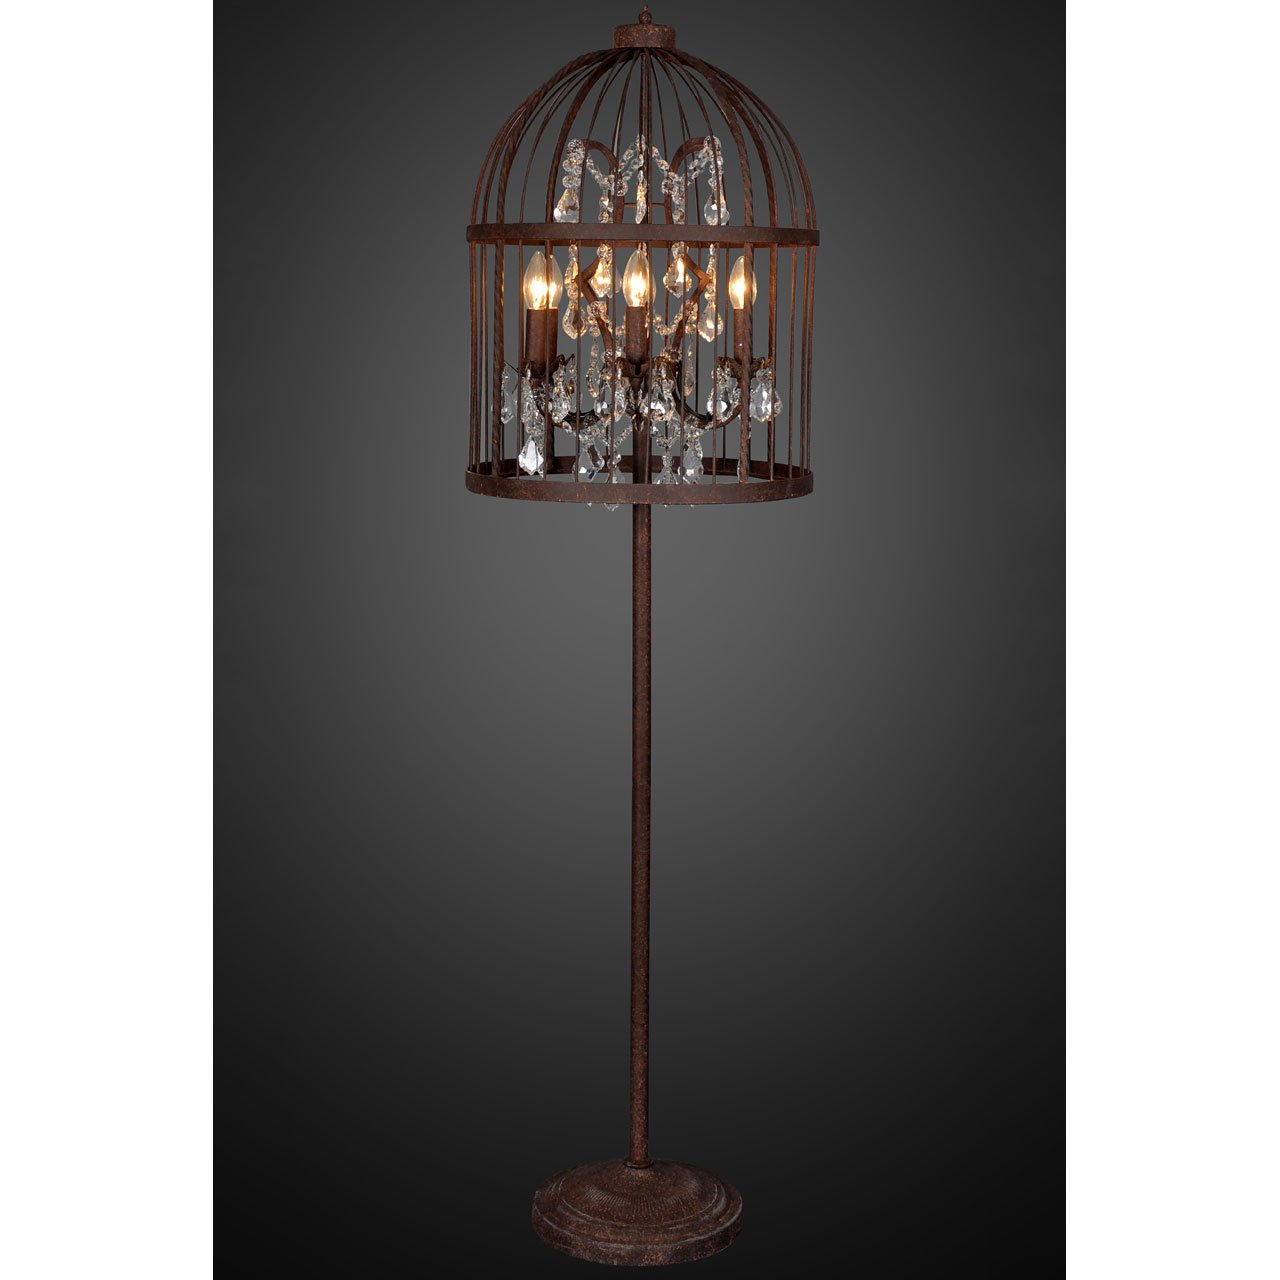 pagoda view seeded lantern home bird kuo light birdcage cage lamp glass detail size product full kathy